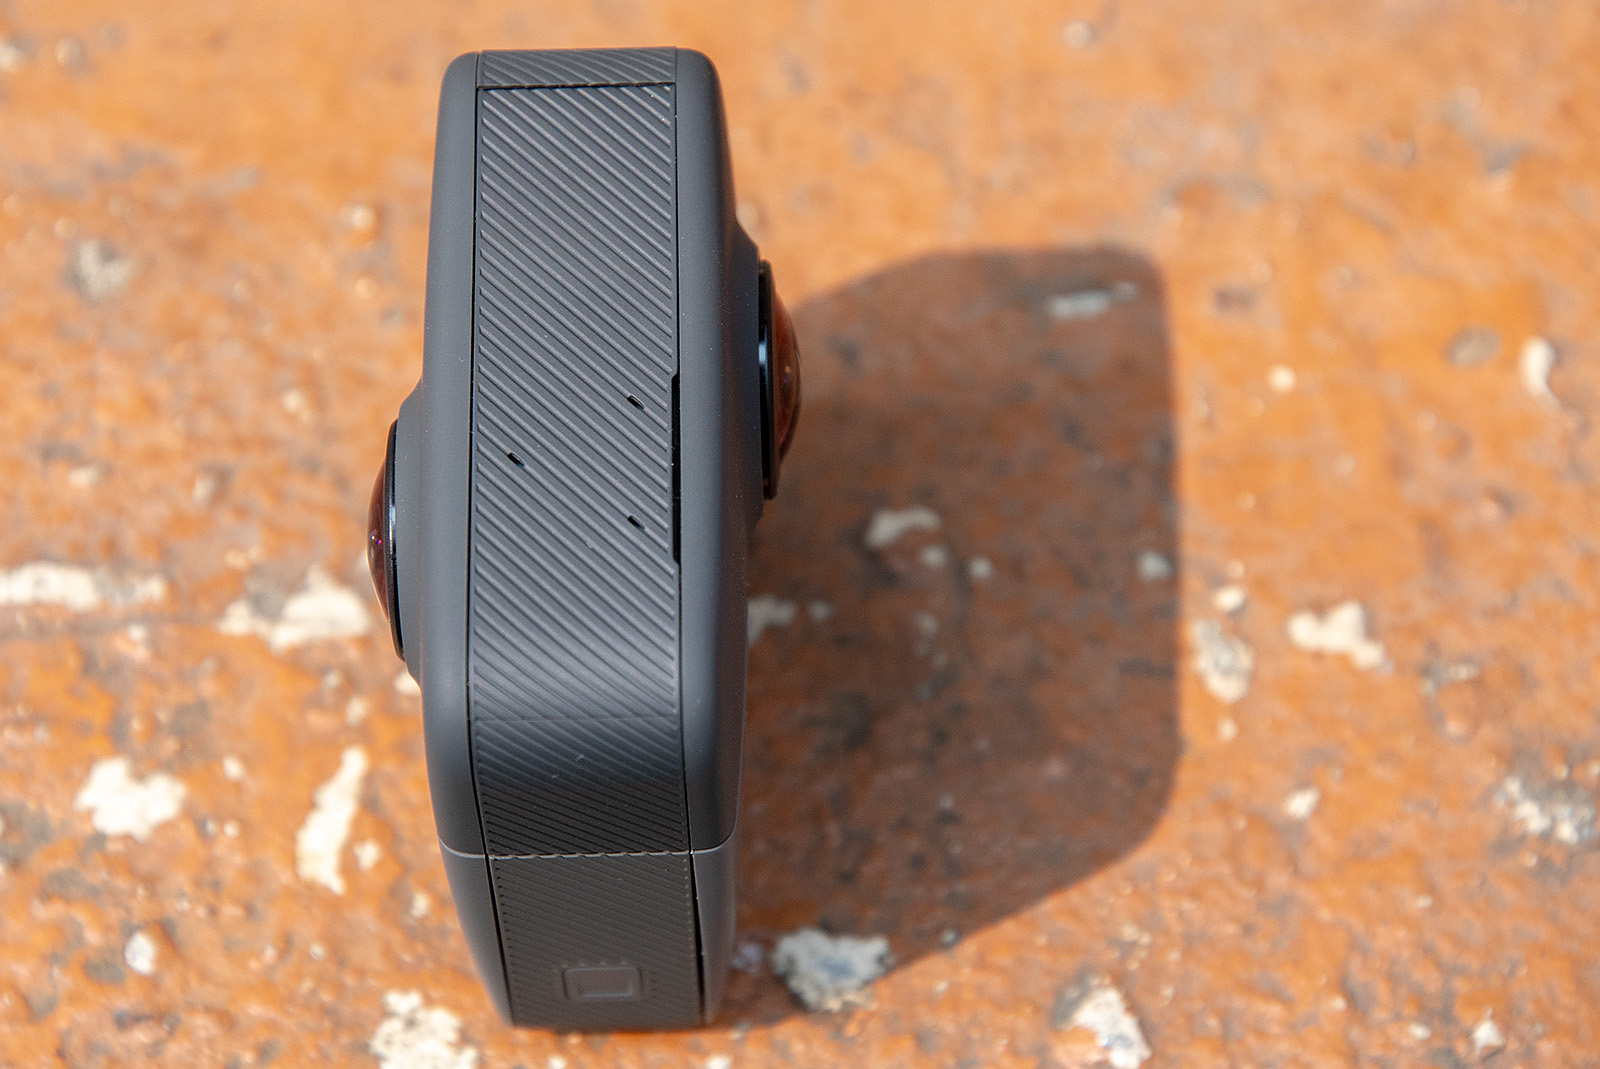 Review: the GoPro Fusion is a different kind of action